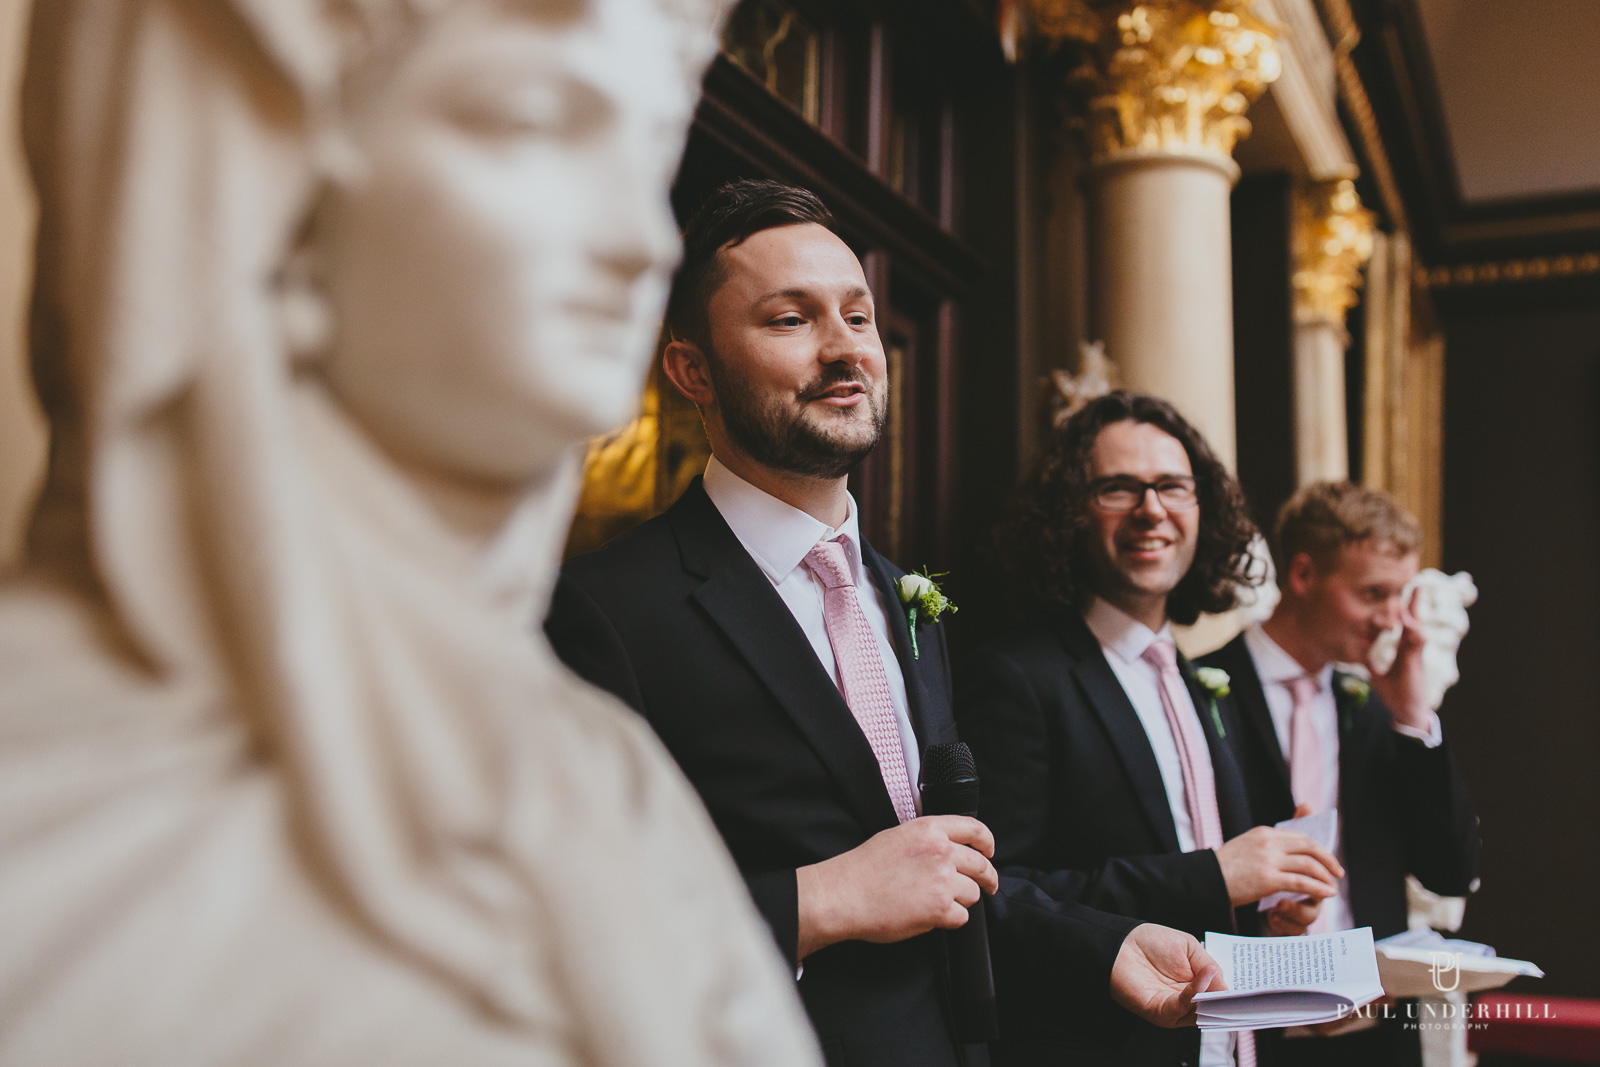 Photographers in Bournemouth weddings